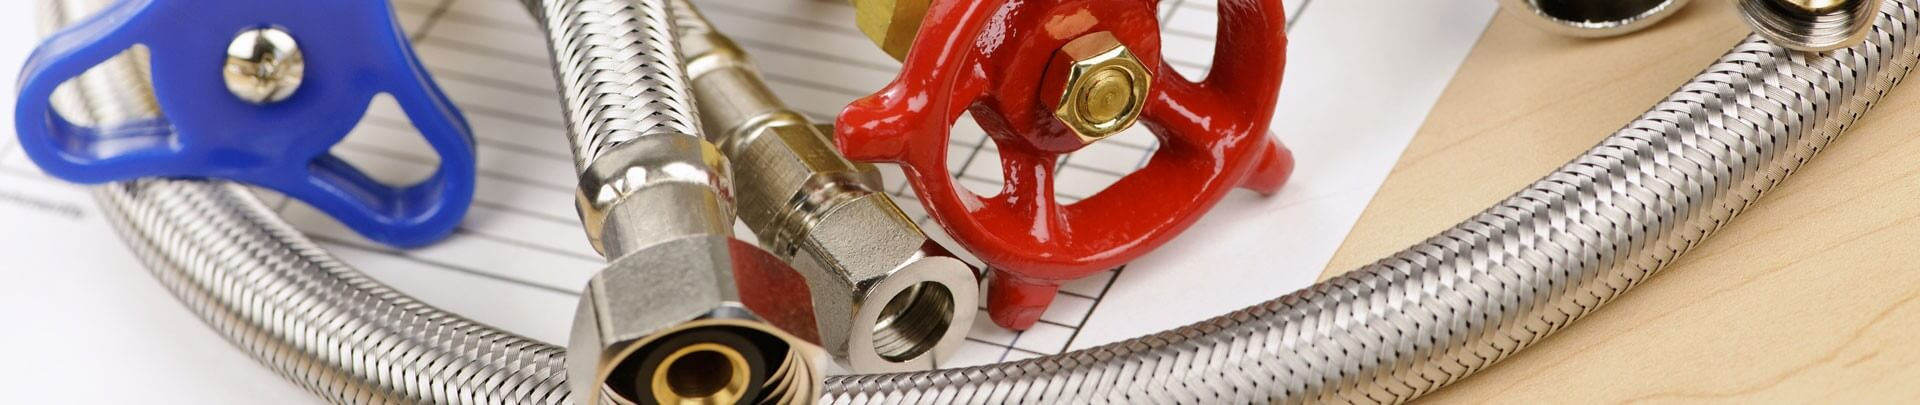 Experts Plumbing Services, LLC - Automatic Shut–Off Valves